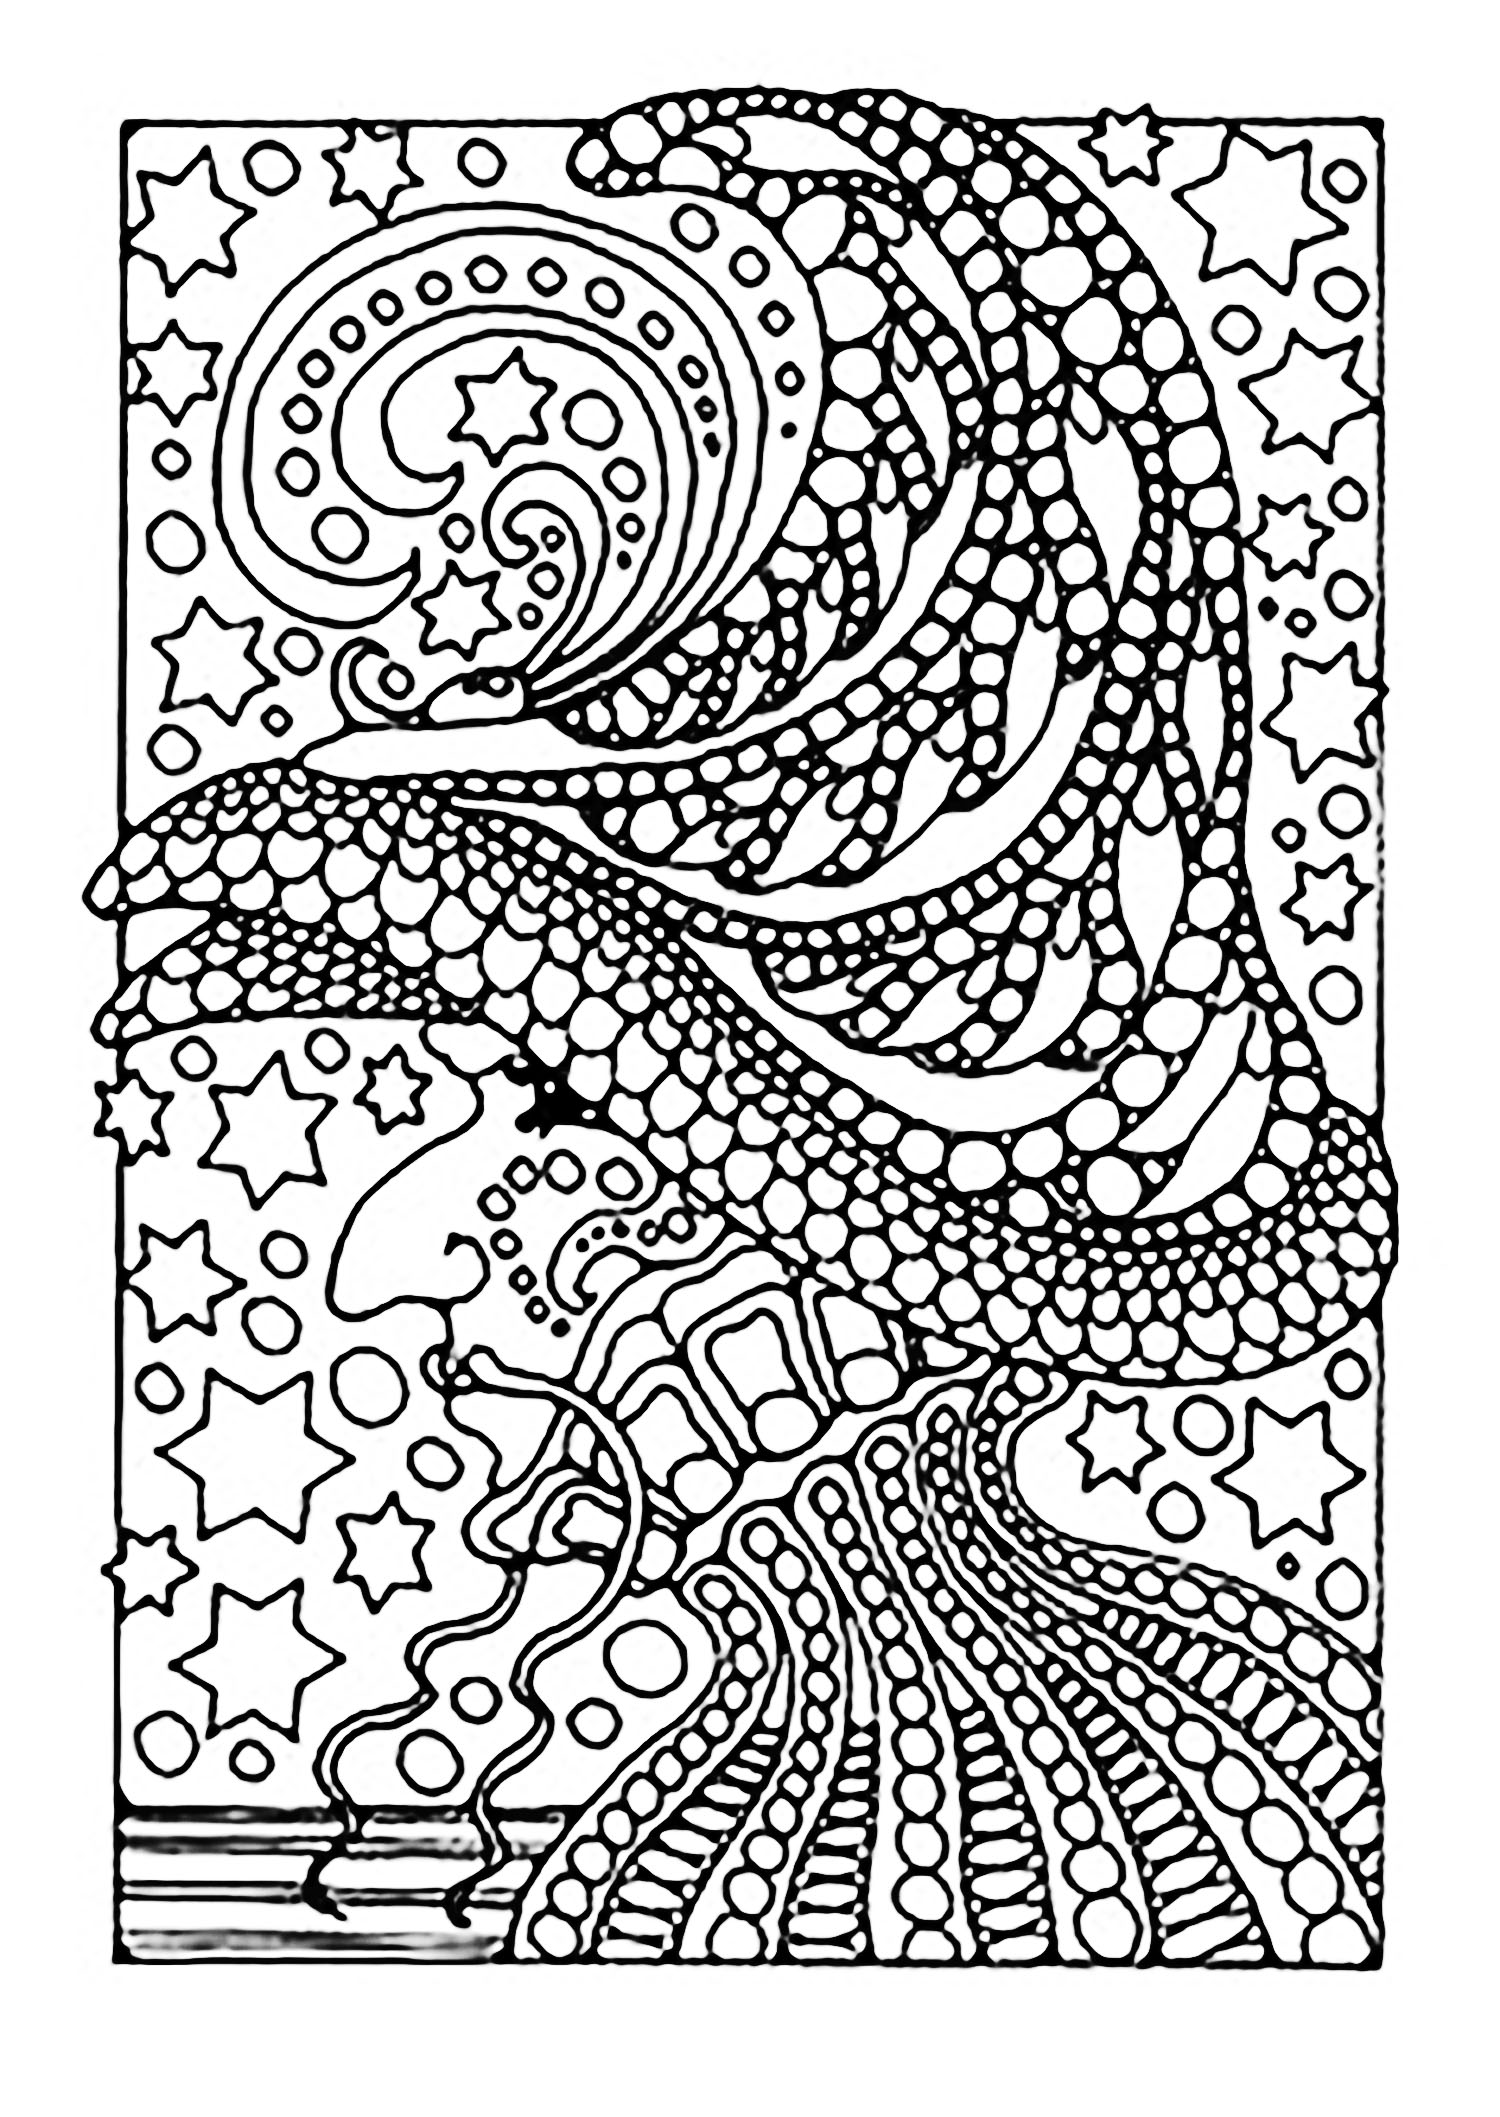 free printable pictures to color free printable witch coloring pages for kids printable to color free pictures